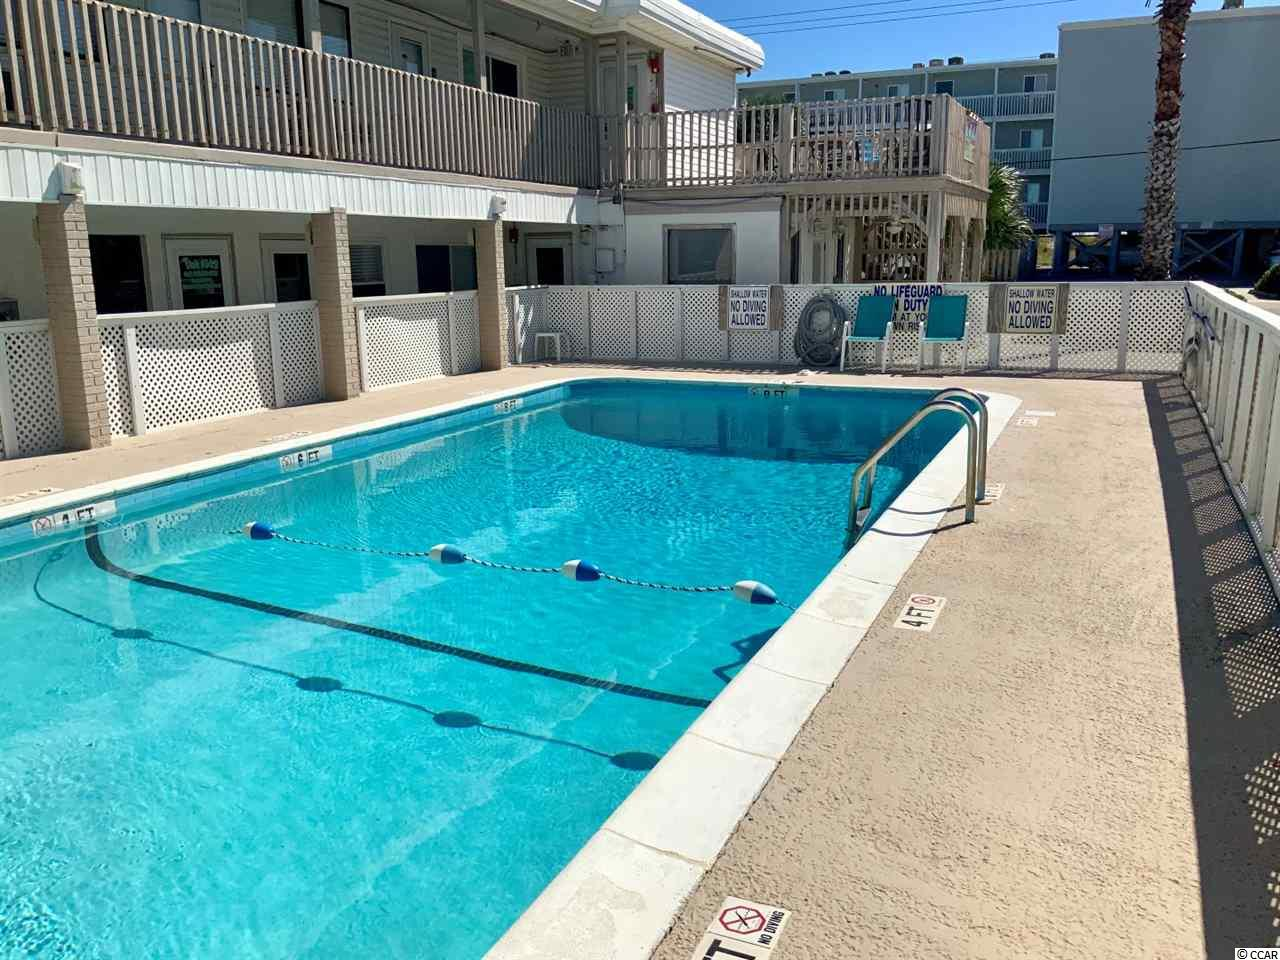 Have you seen this Grand Strand Resort IV property for sale in North Myrtle Beach